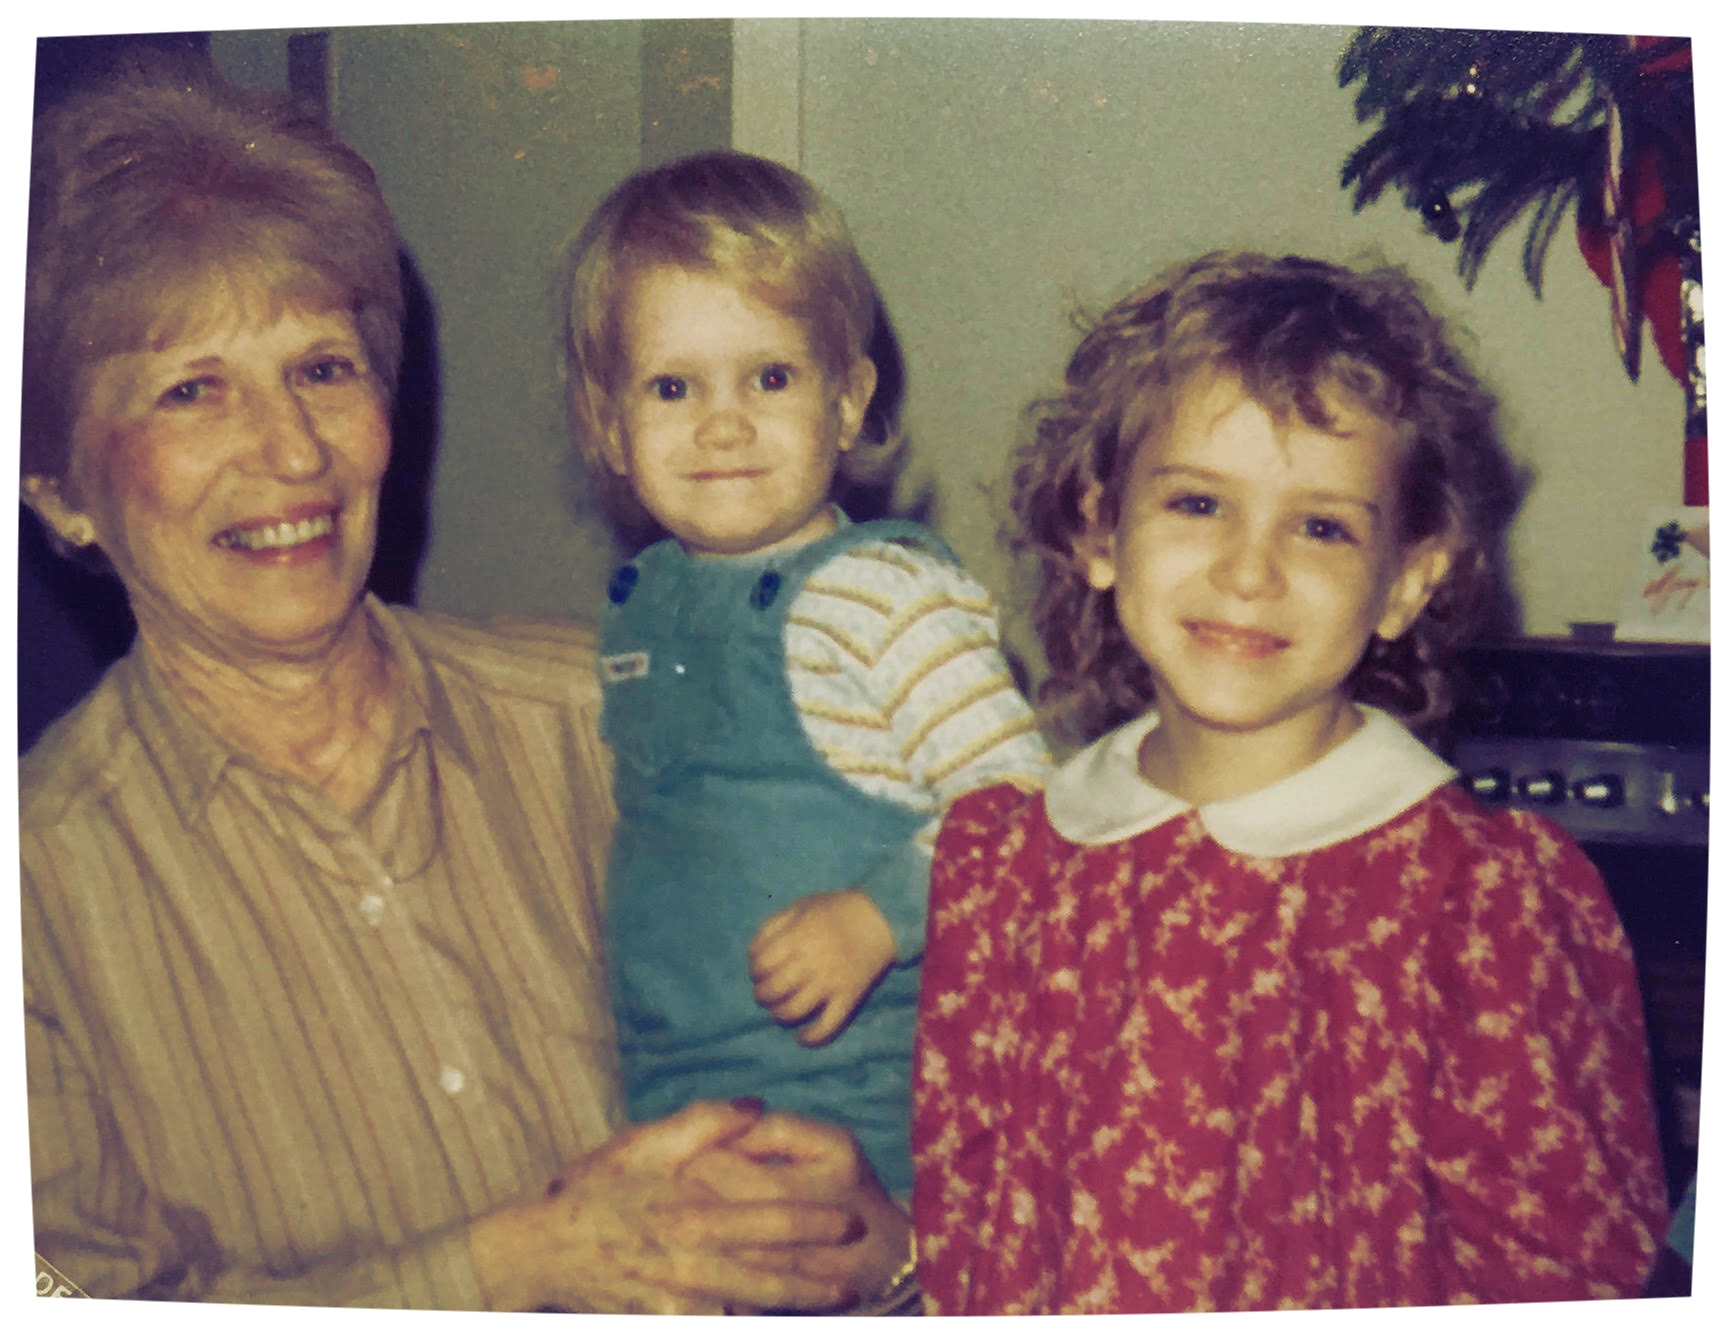 Gramma Billee, the writer's baby brother, and the writer as a little girl, 1982